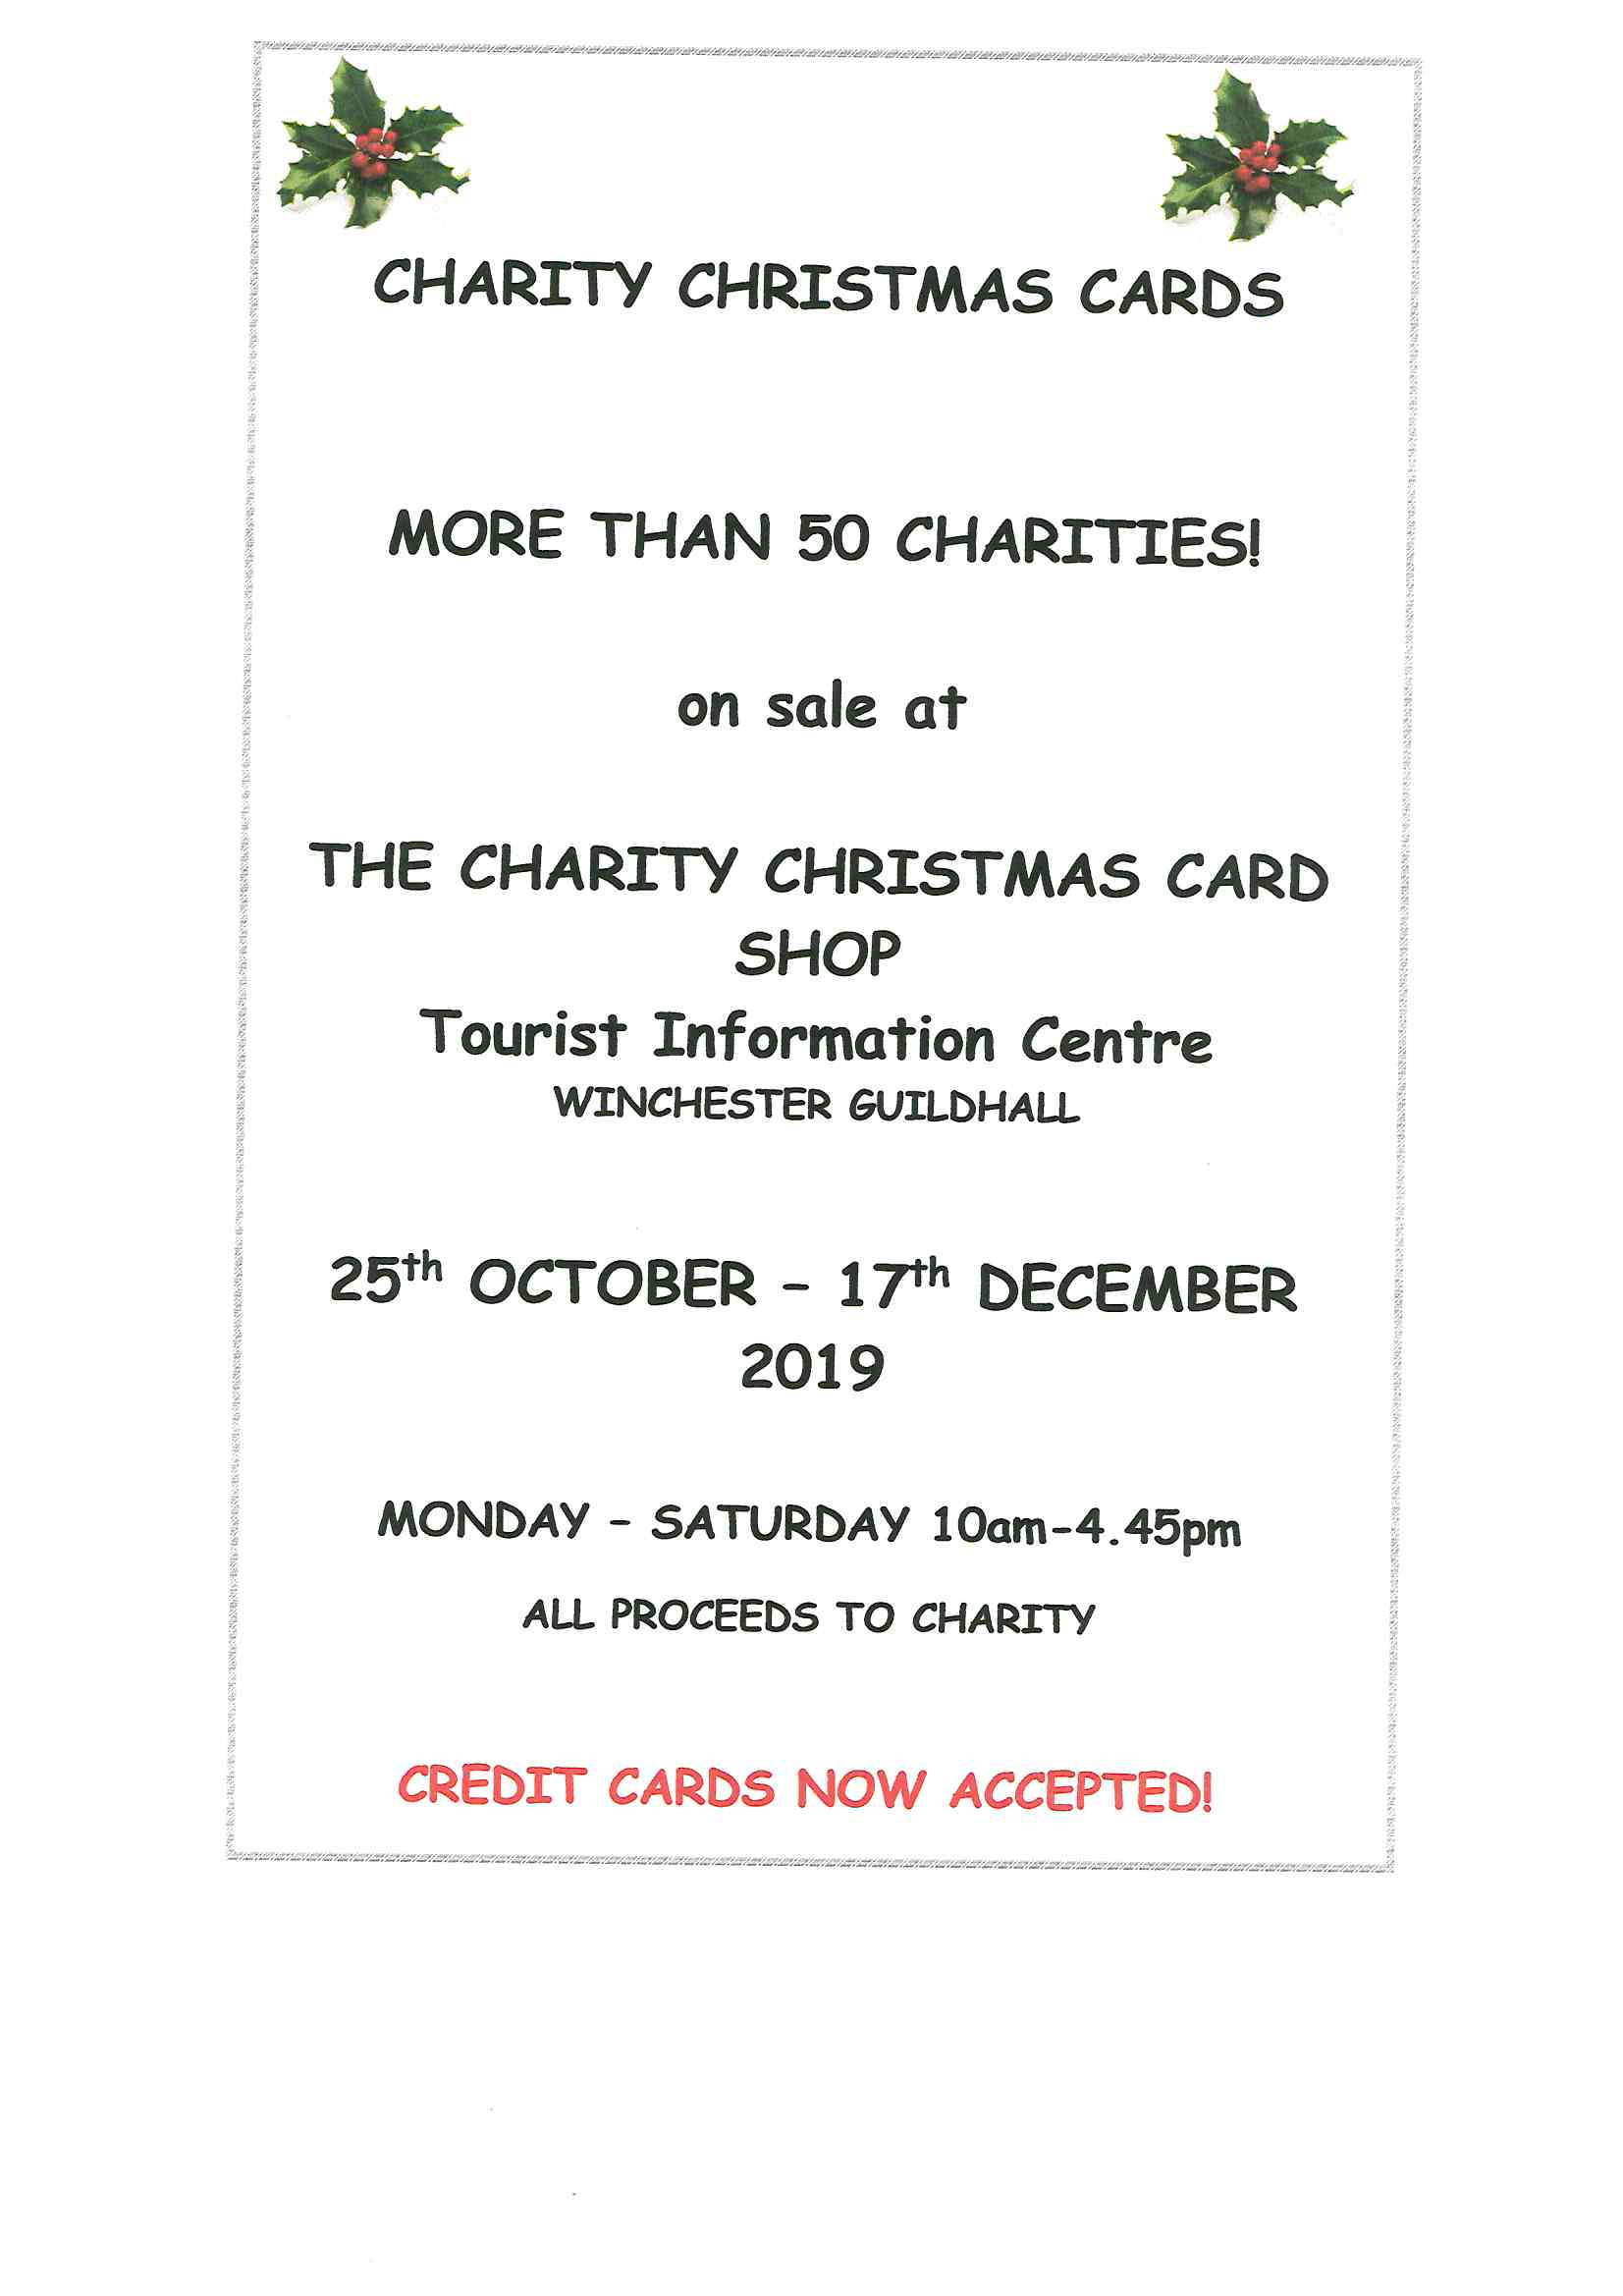 Charity Christmas Cards on sale at Winchester Guildhall from 25 October to 17 December.